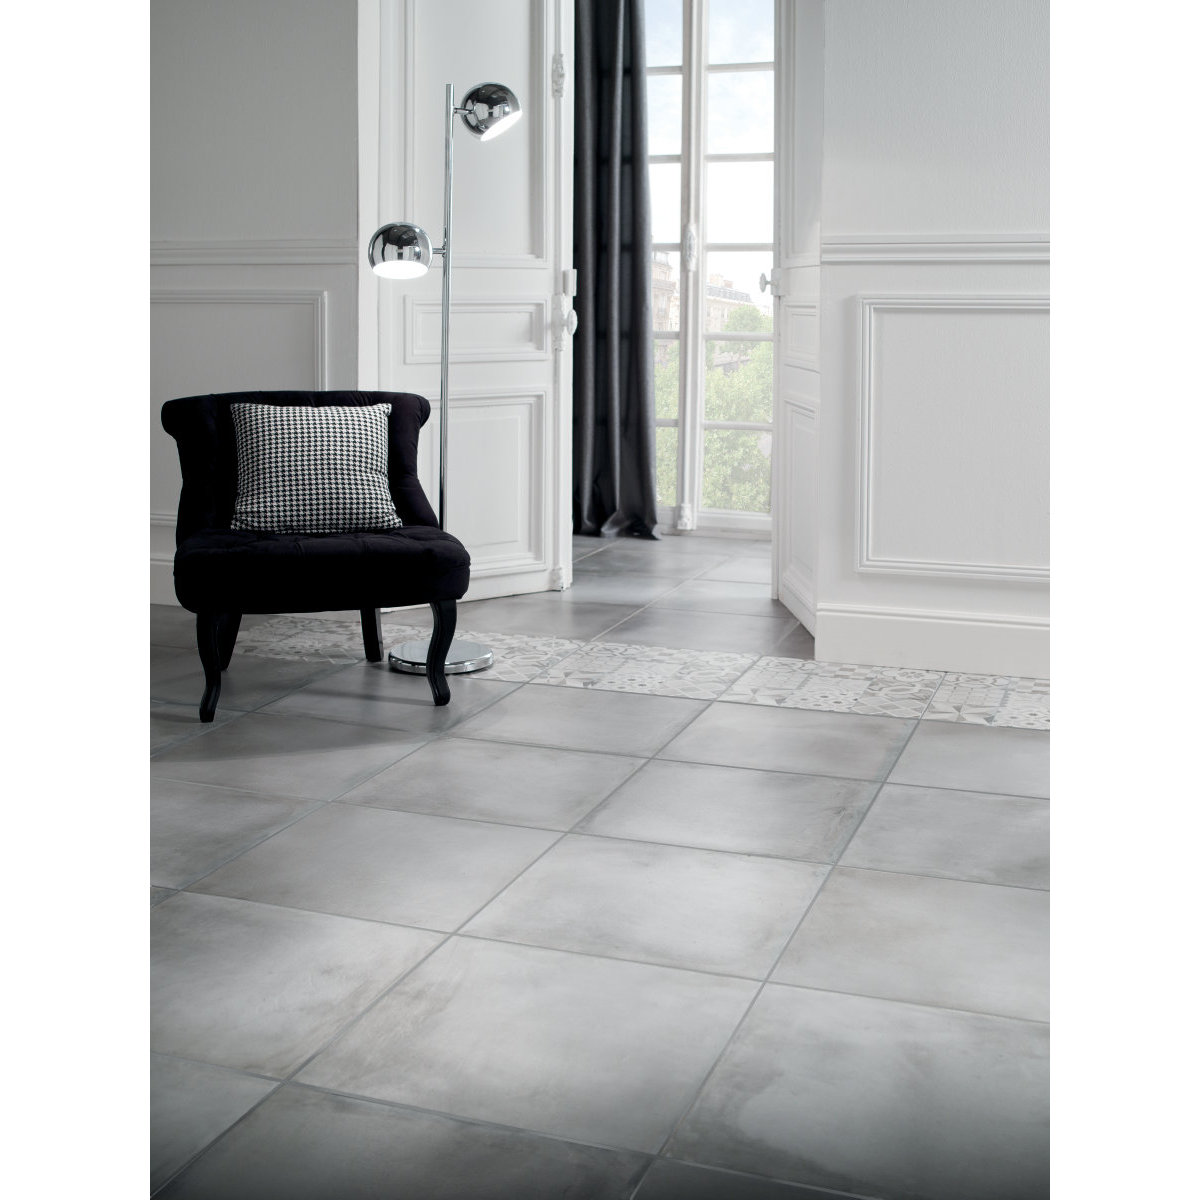 Lino salle de bain brico depot for Photos carrelage